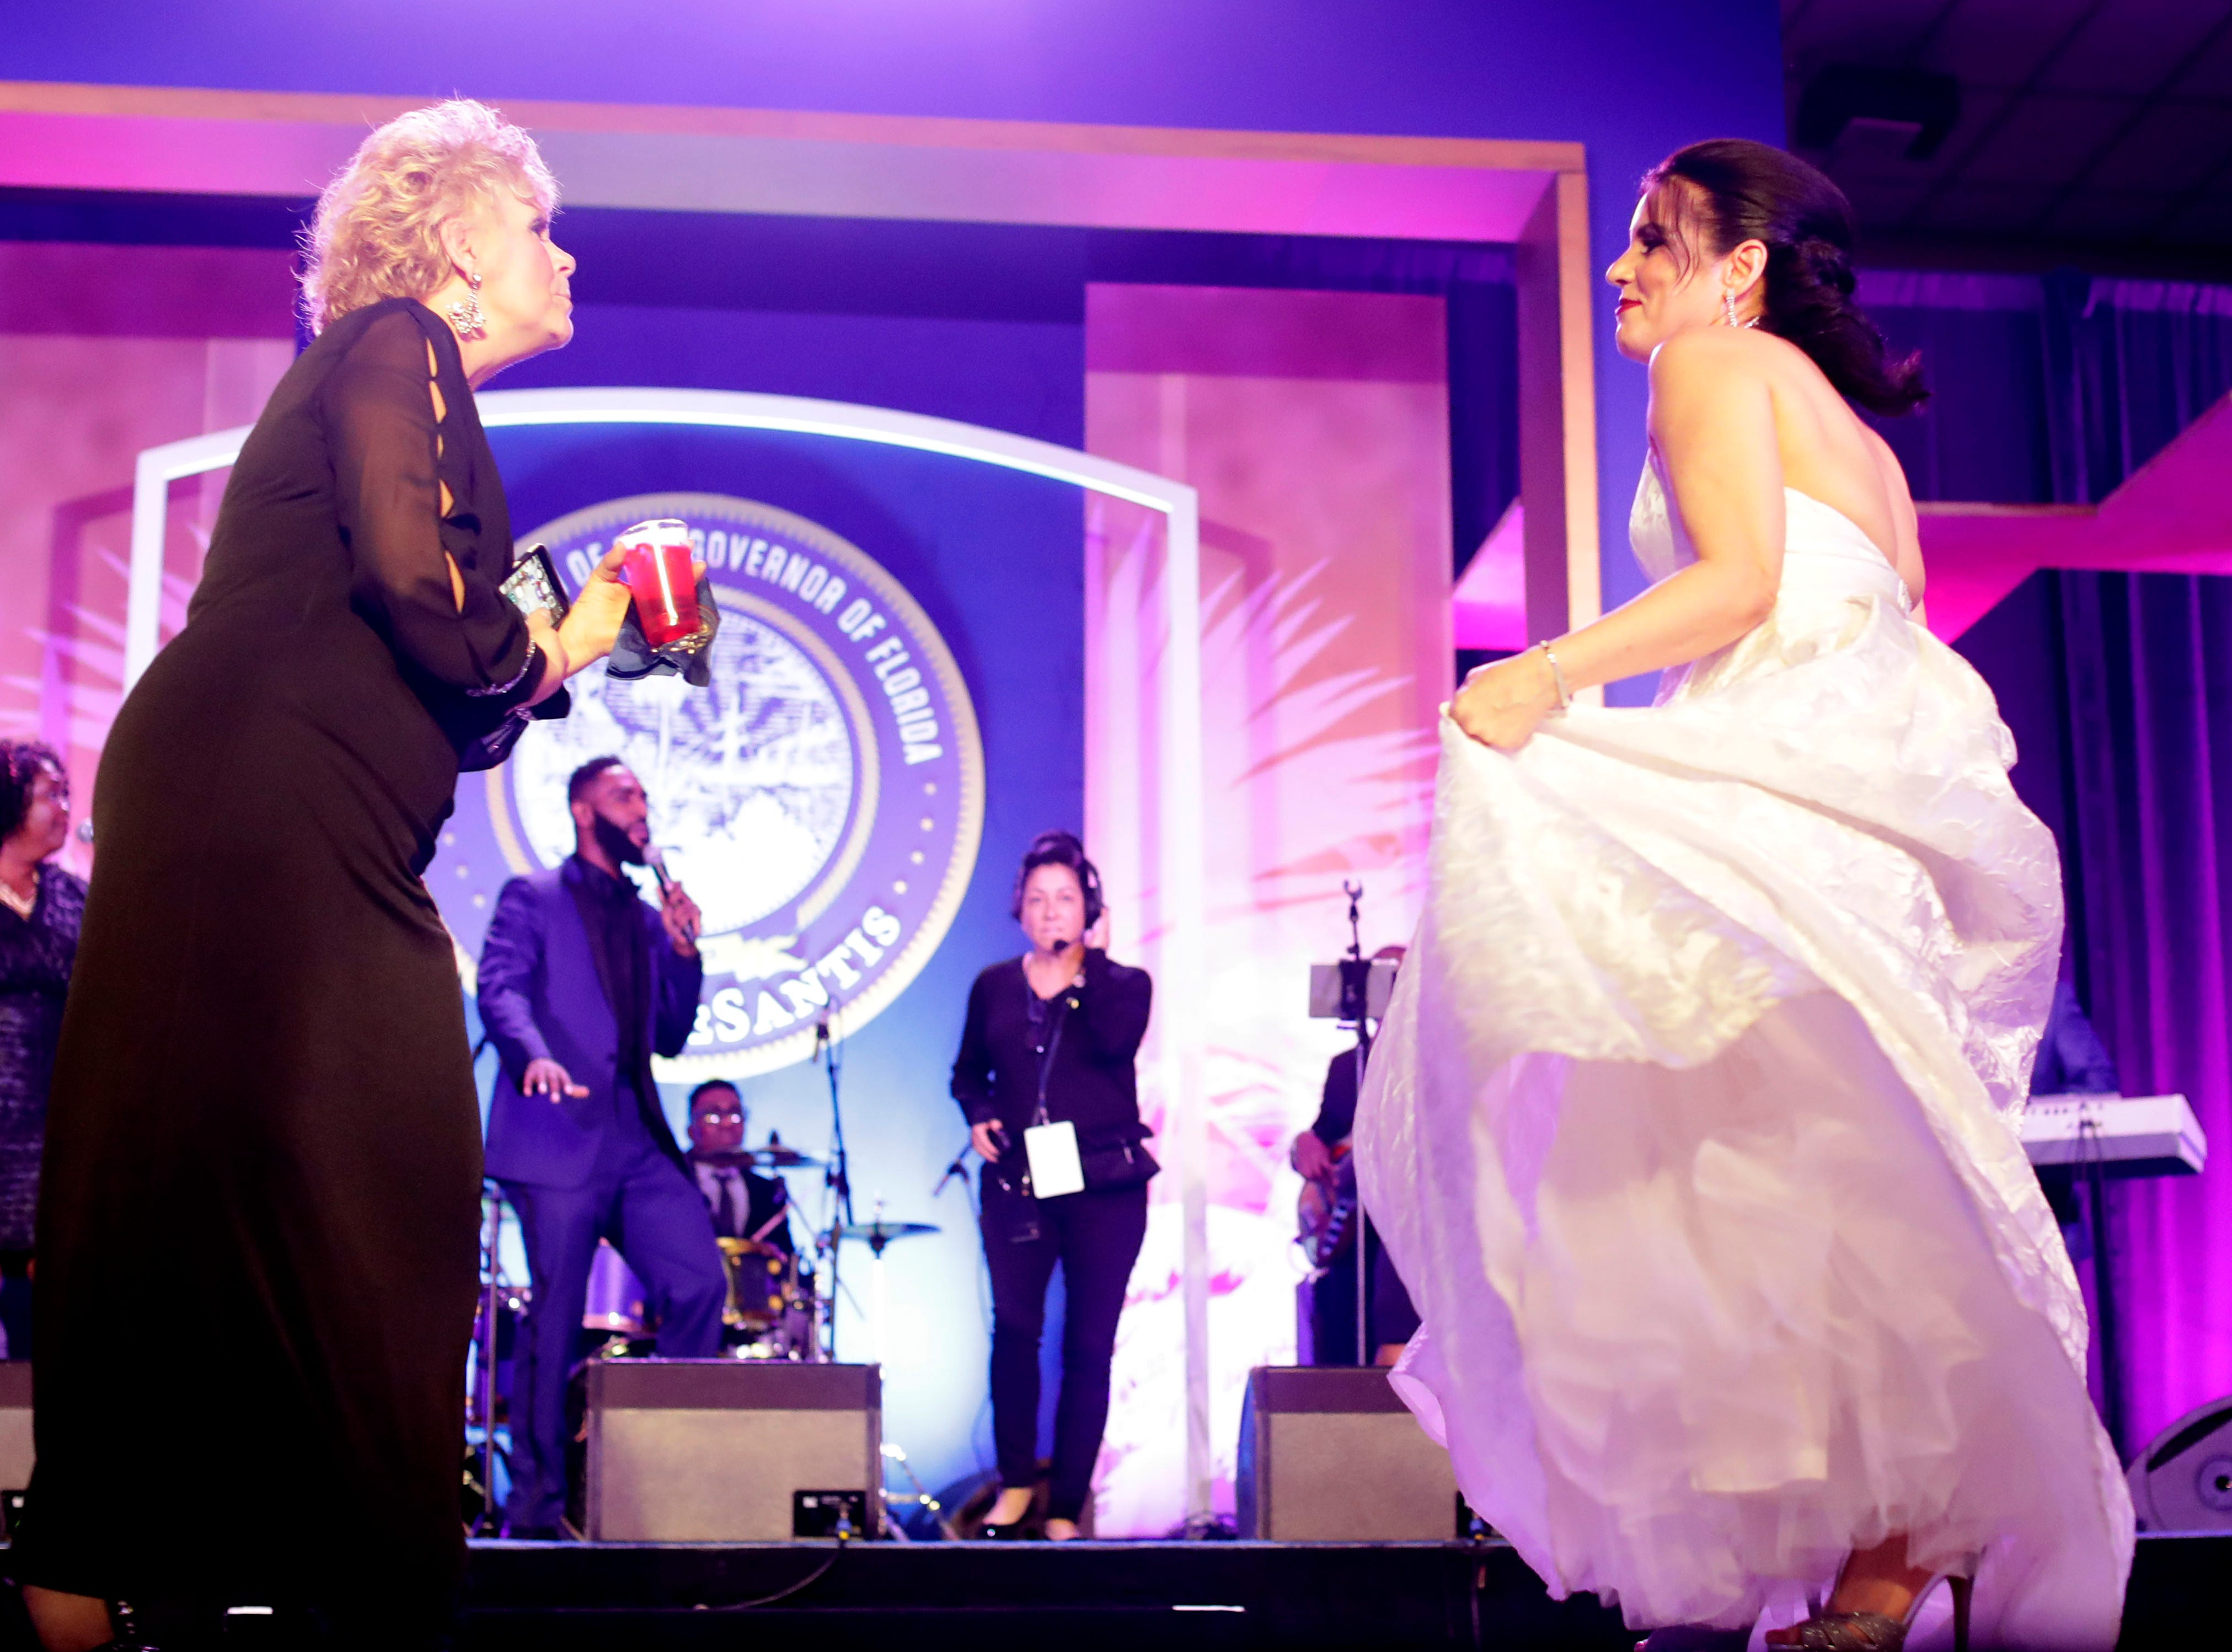 Hundreds of guests from all over Florida attend Florida's 46th Governor's Inaugural Ball at the Tucker Civic Center, Tuesday, Jan. 8, 2019.  Guests dance the night away on stage as live music is performed.